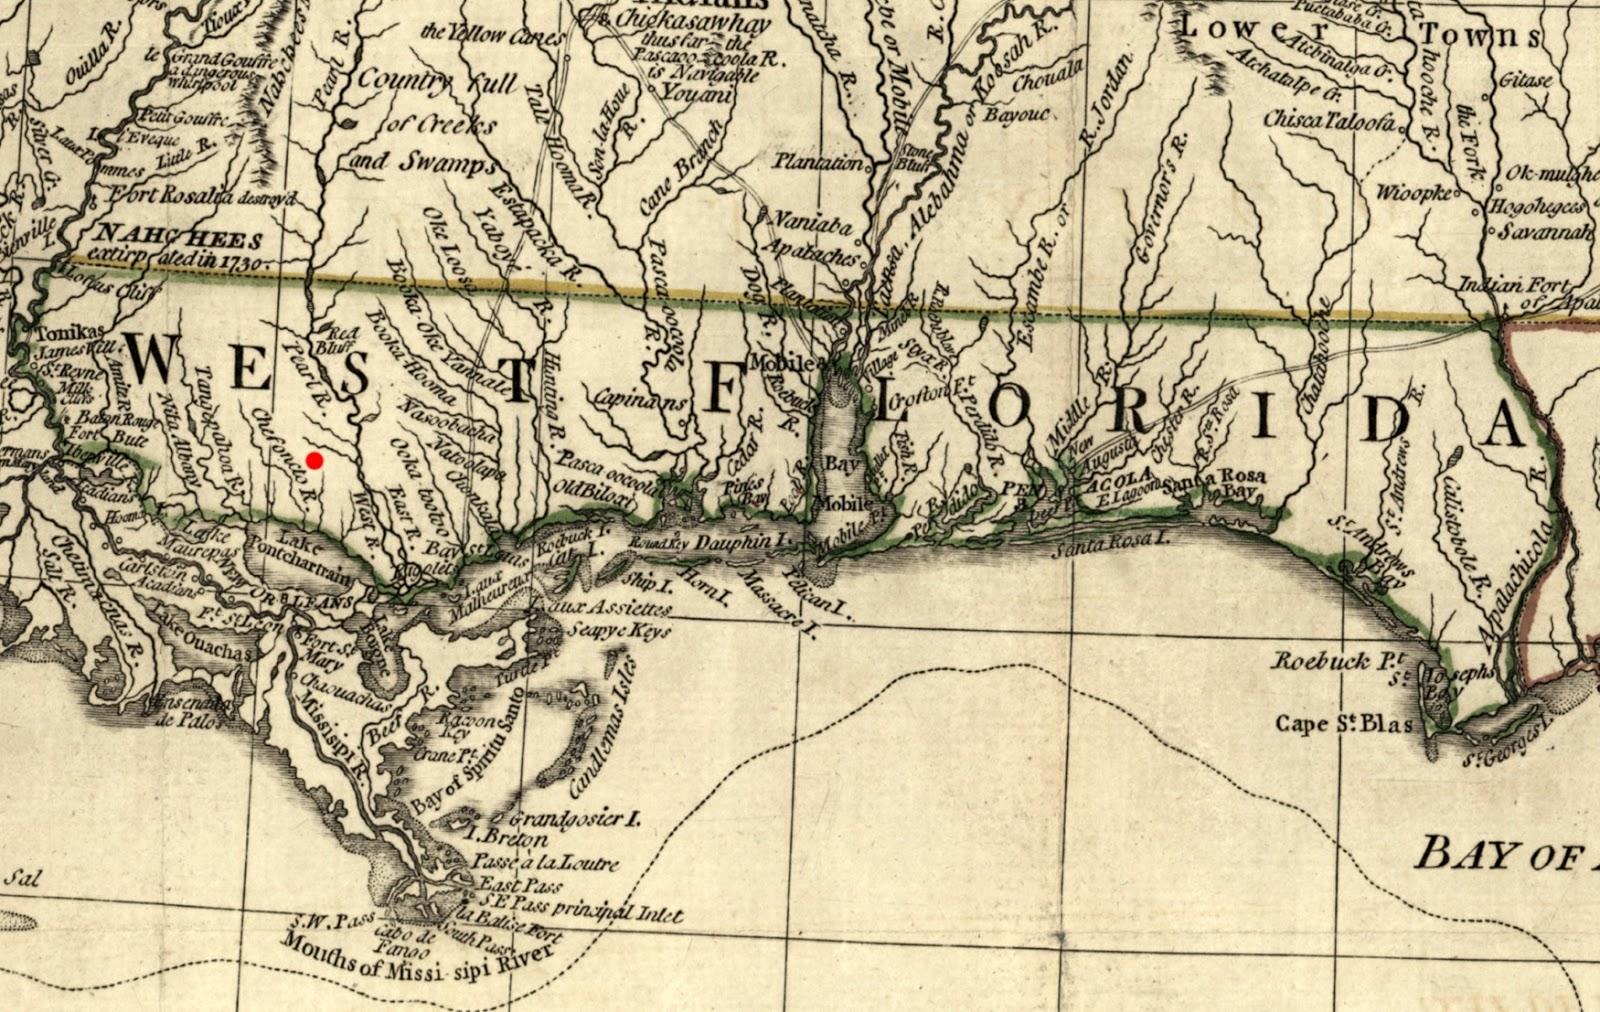 west florida in 1776 red dot locates covington